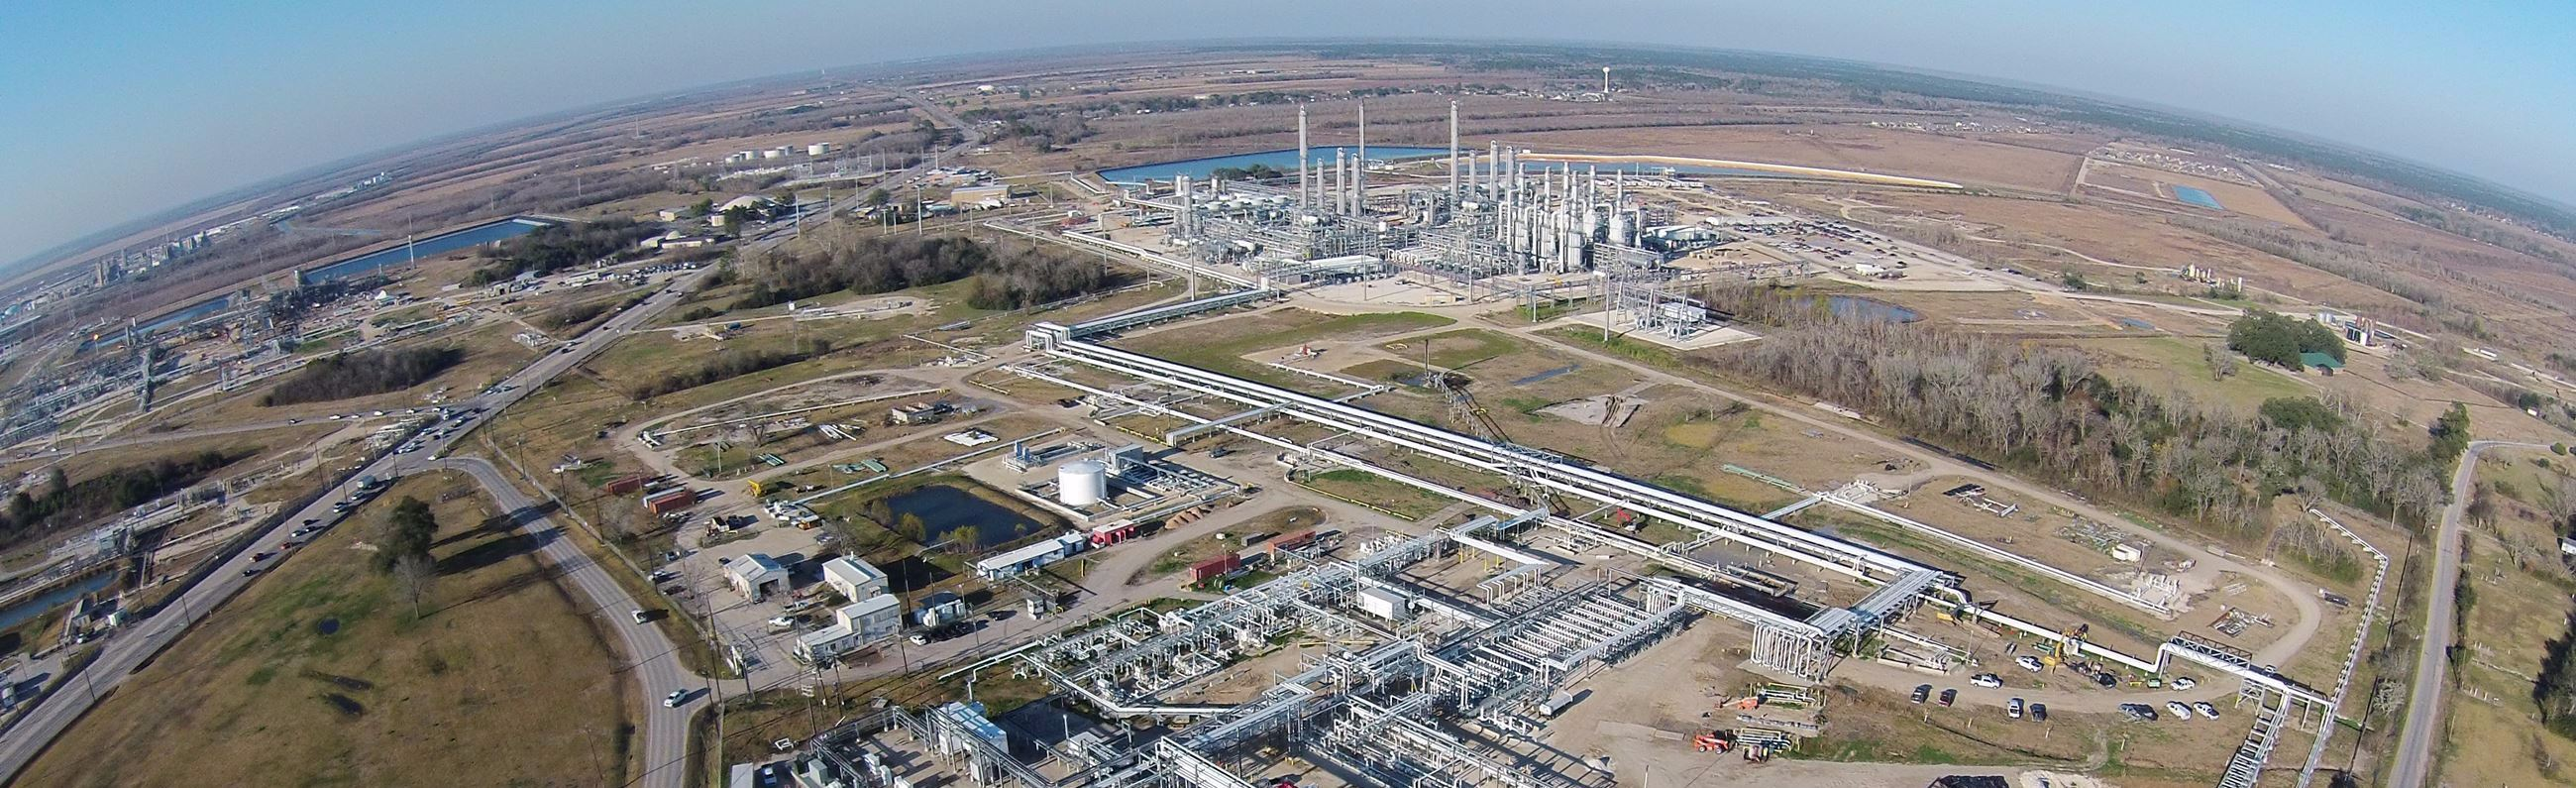 An aerial view of Mont Belvieu's large natural gas industrial area